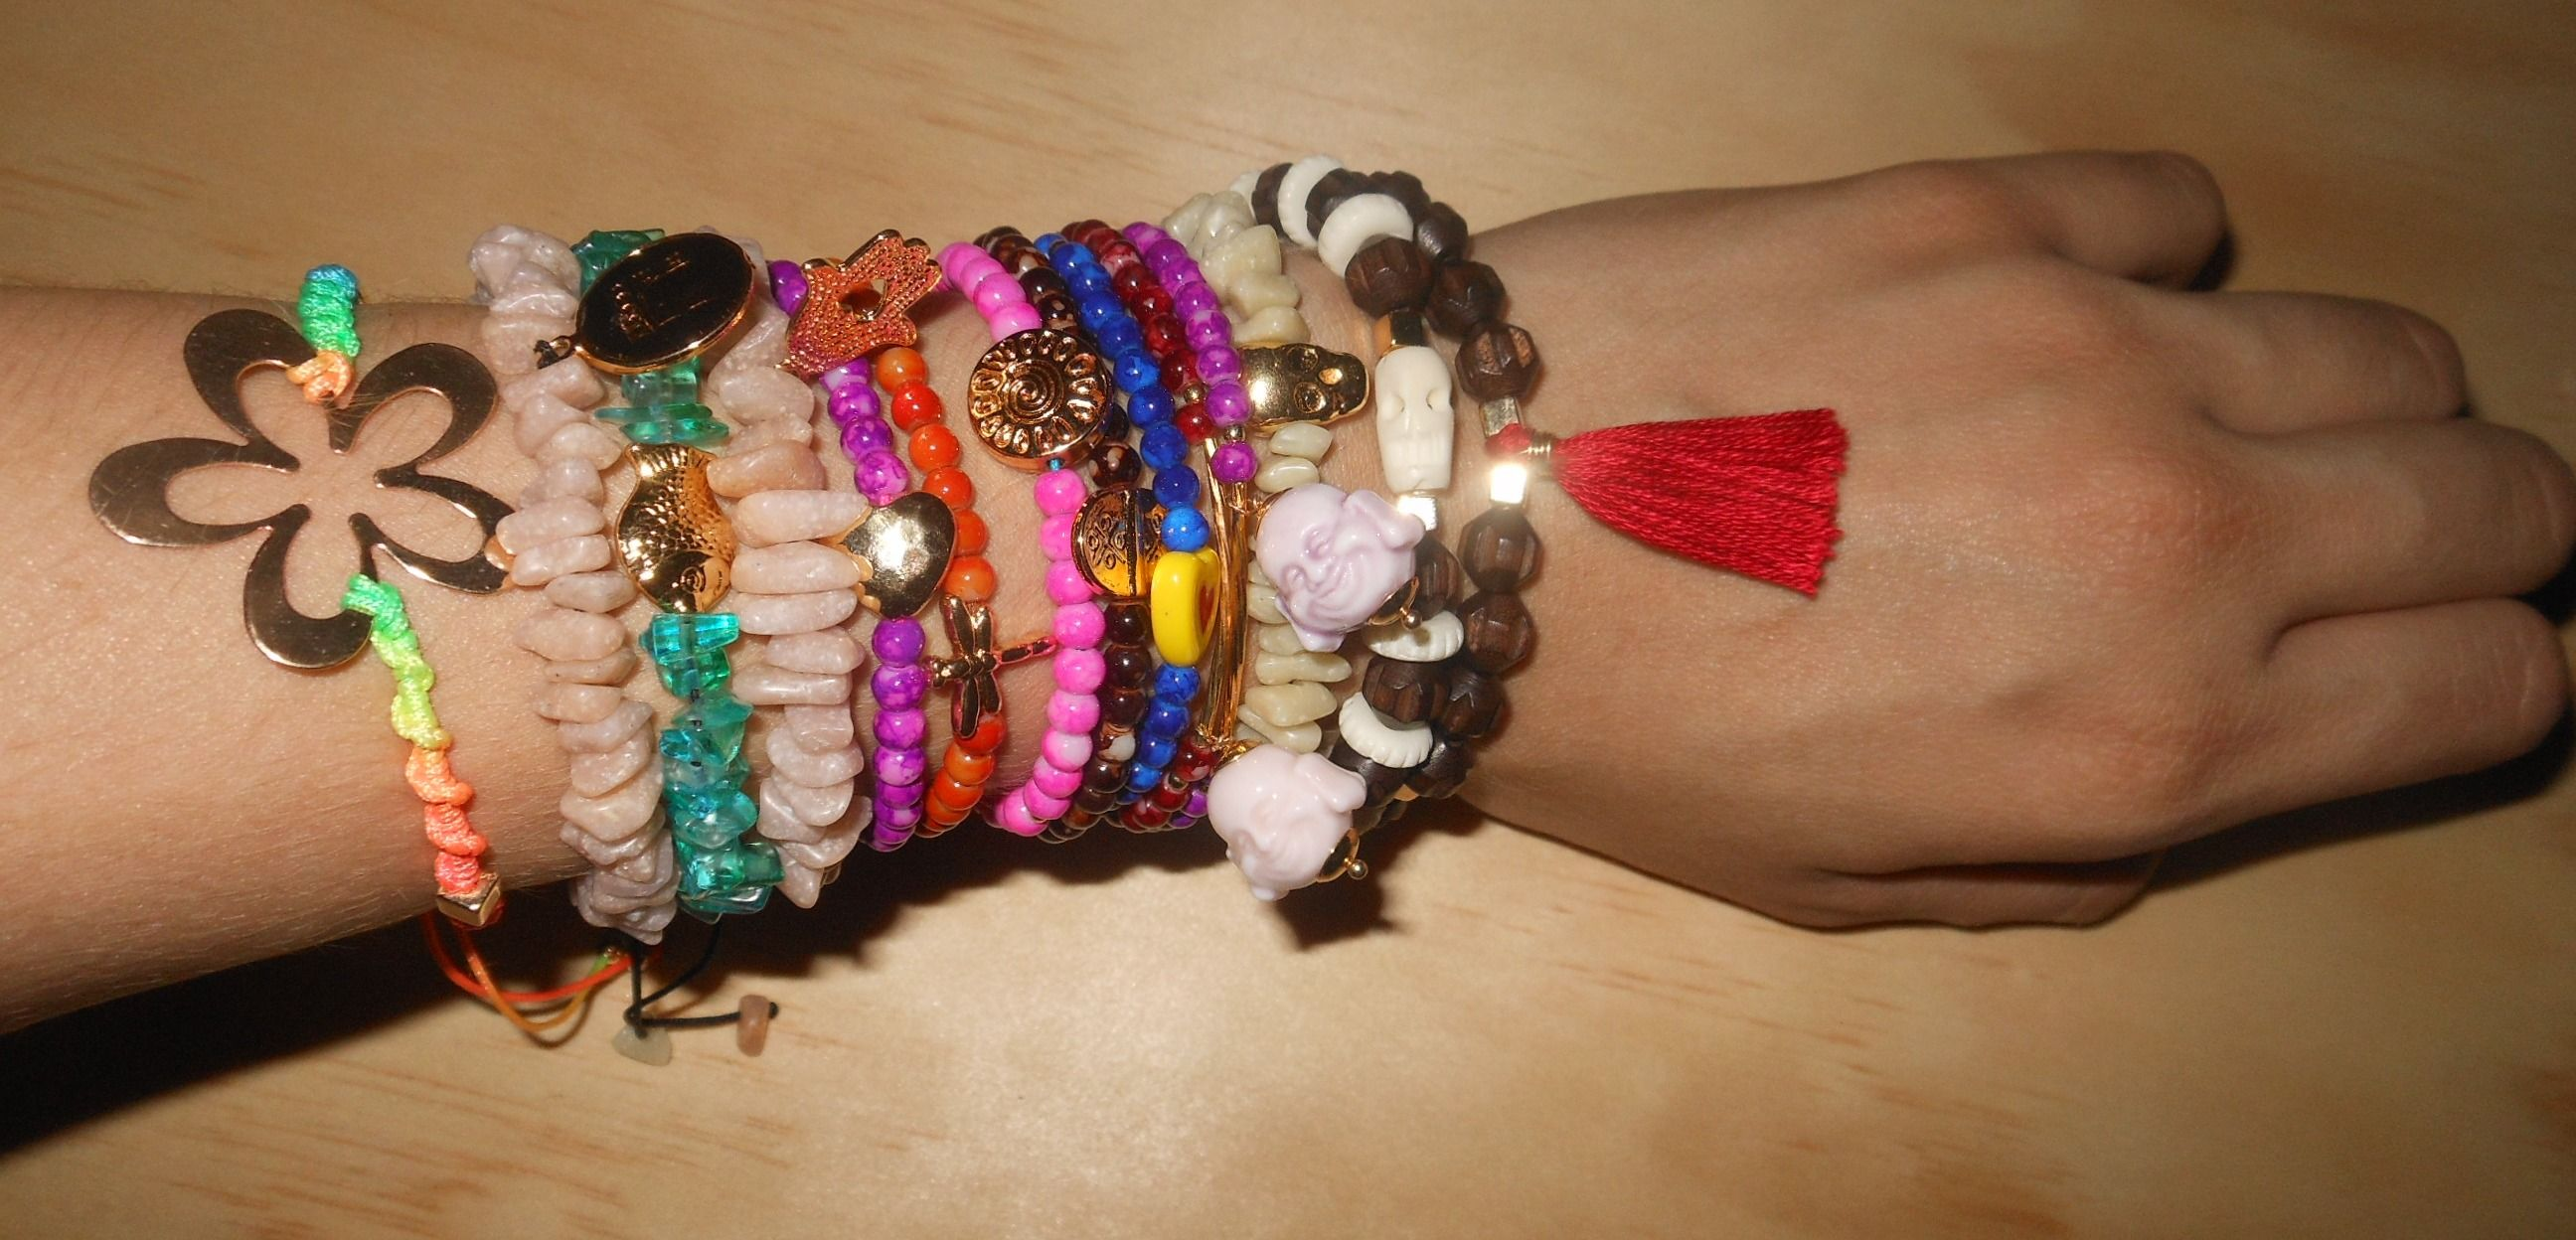 i l<3ve my hand whit my creations *-*  Liliana Torres Accesorios  lilitorres020@gmail.com  Medellín-Colombia